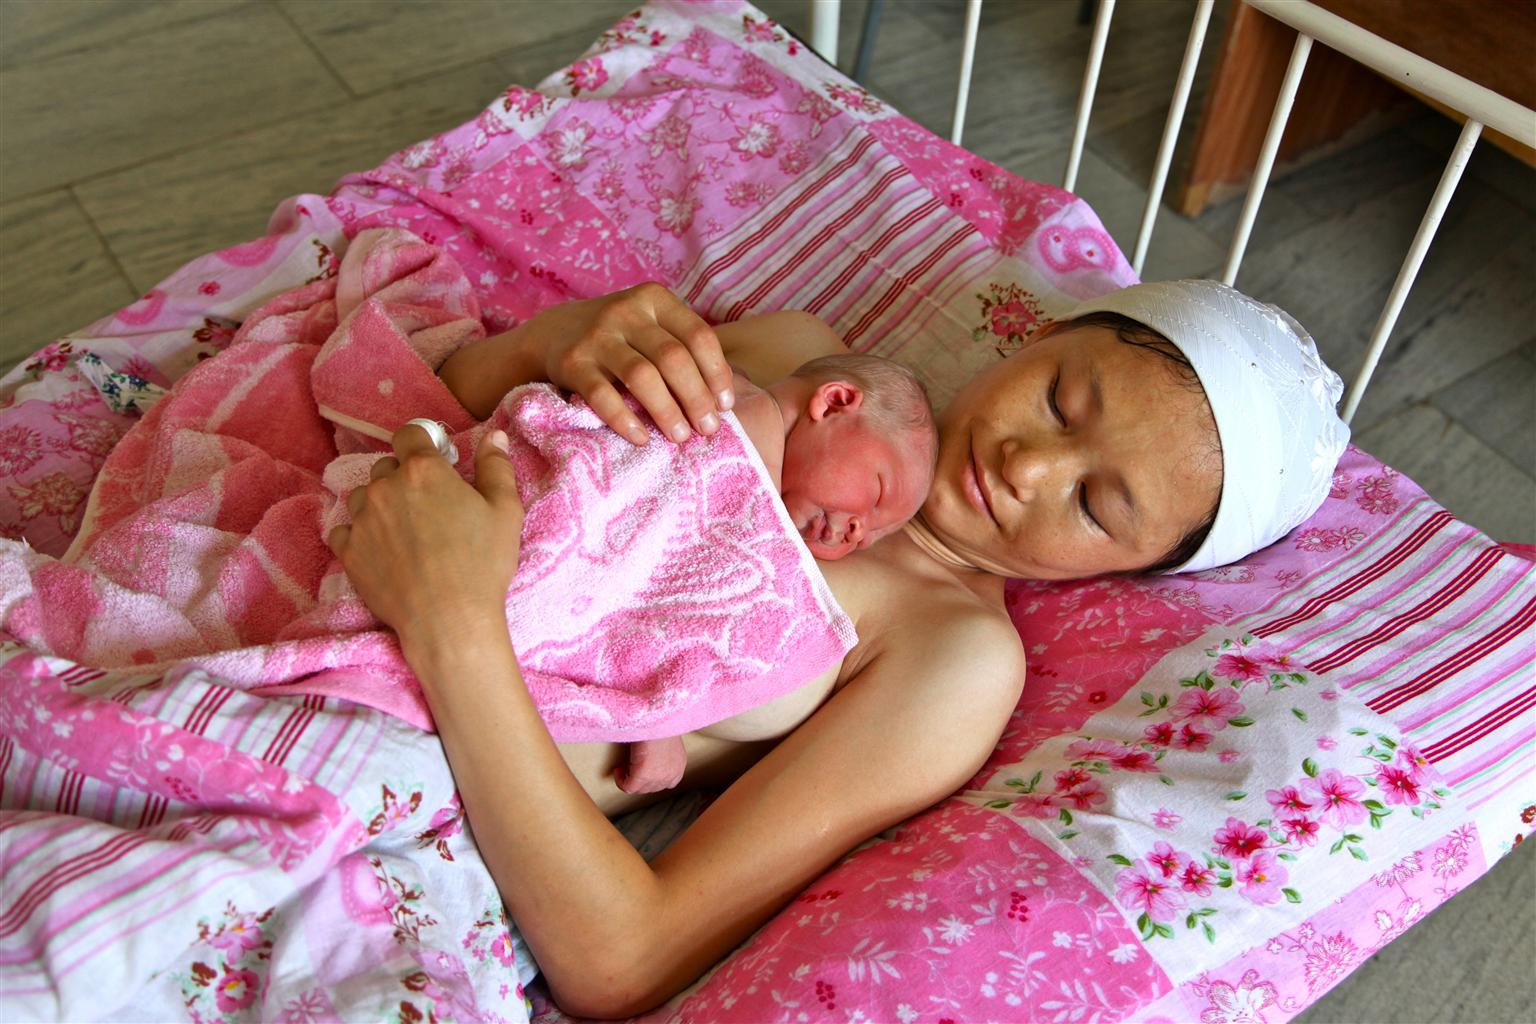 Jonsulu Shukurbaeva smiles at her newborn in the city of Khujayli's hospital in Uzbekistan.